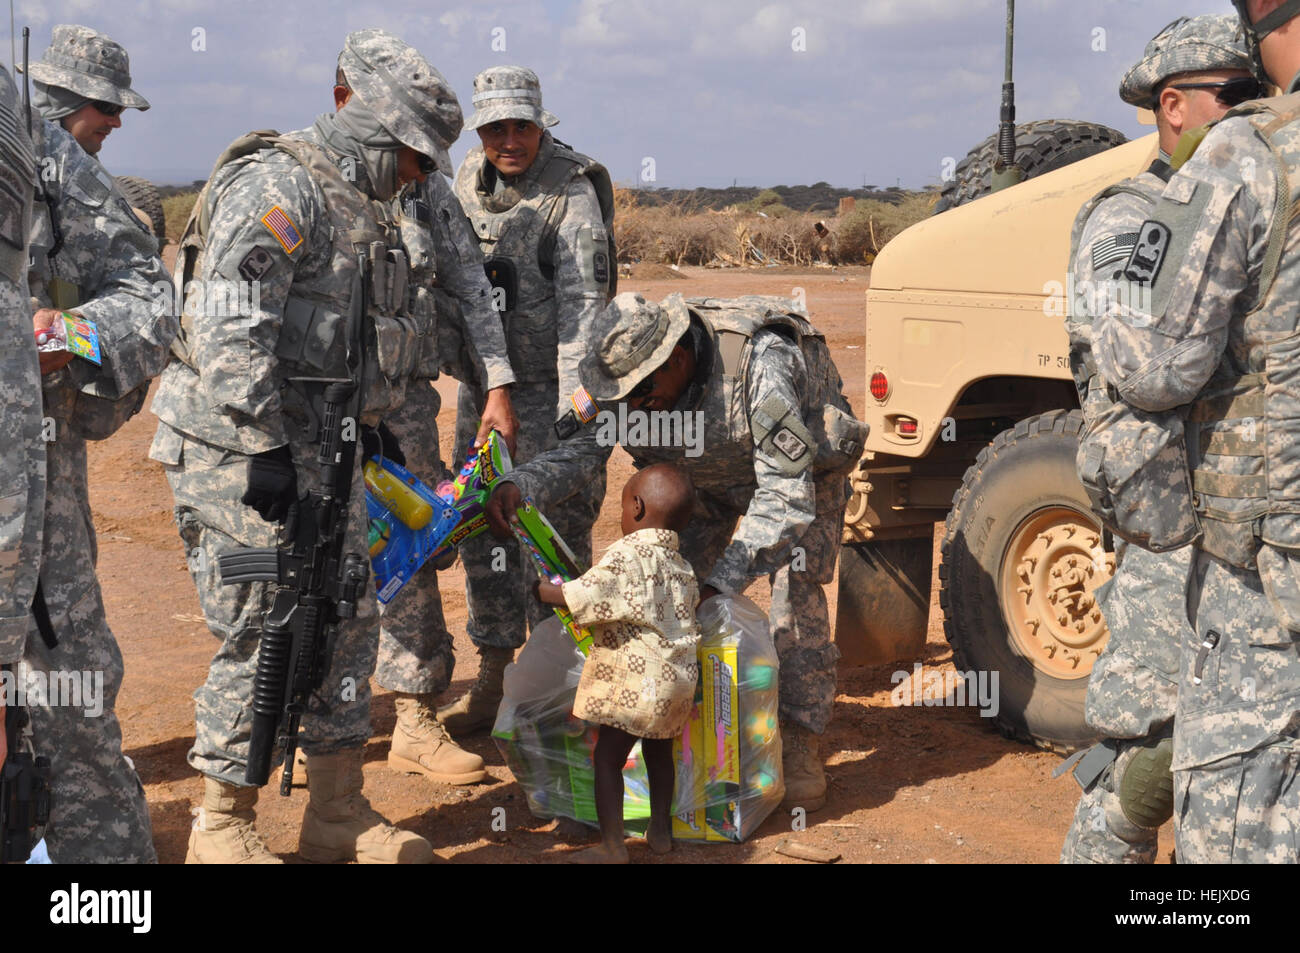 US Army Soldiers Of Charlie Company 1 65th Infantry Battalion Out Coamo Puerto Rico Visit The Village Yasabeh Djibouti Africa On Jan